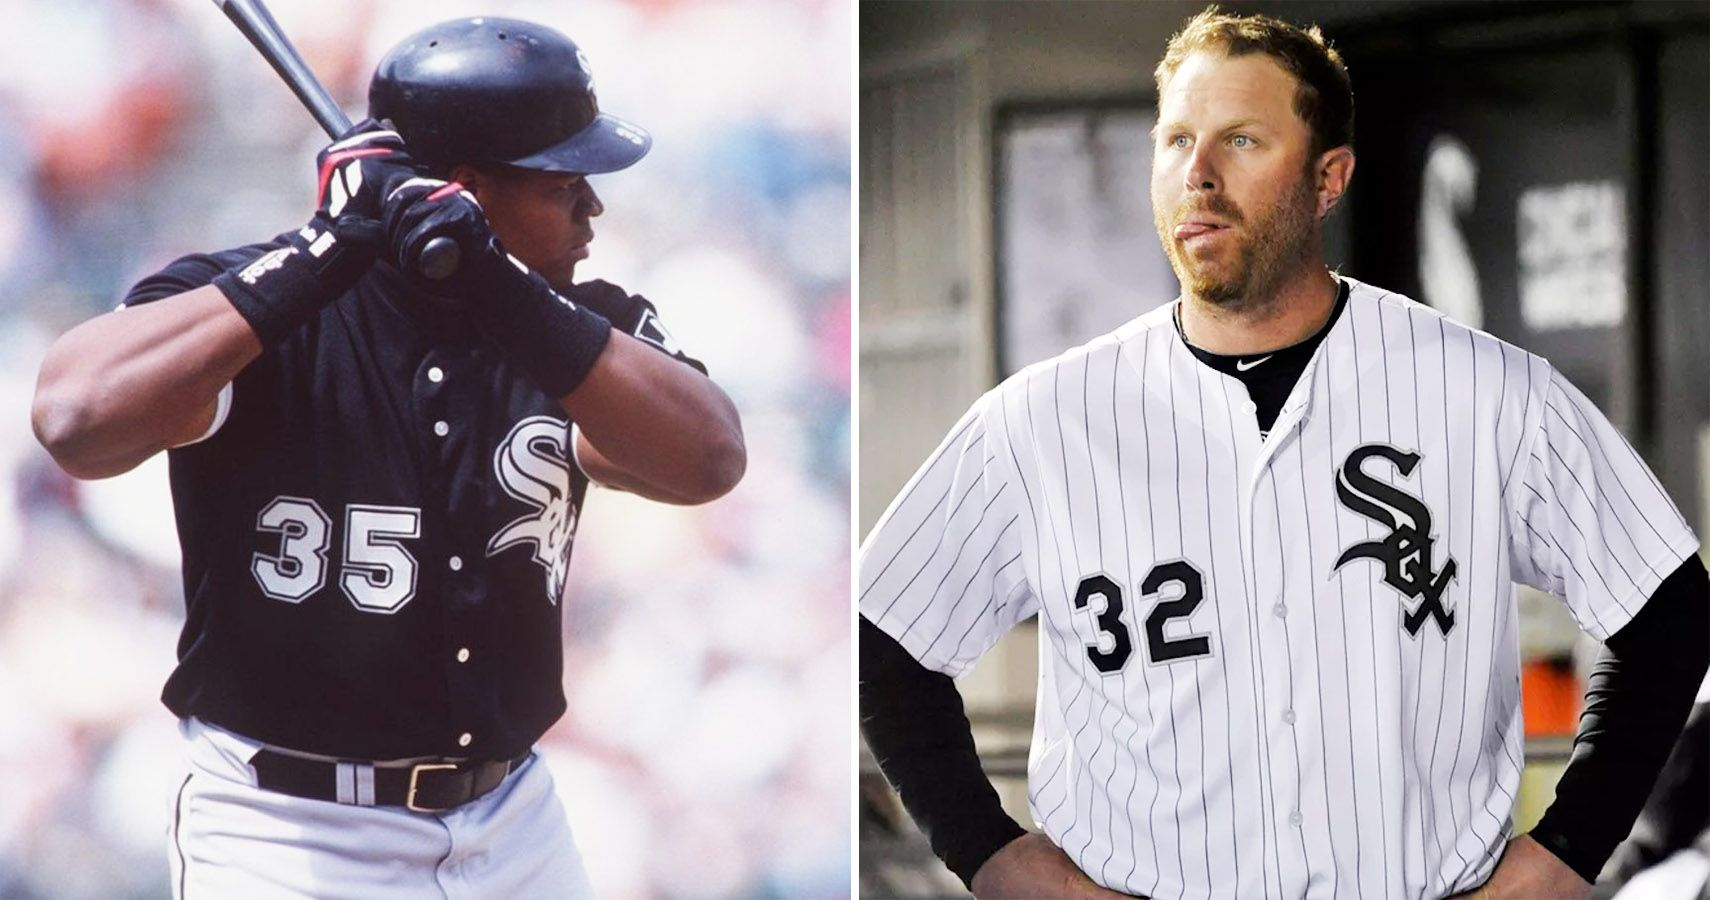 The 9 Best And 9 Worst Chicago White Sox Players Since 2000